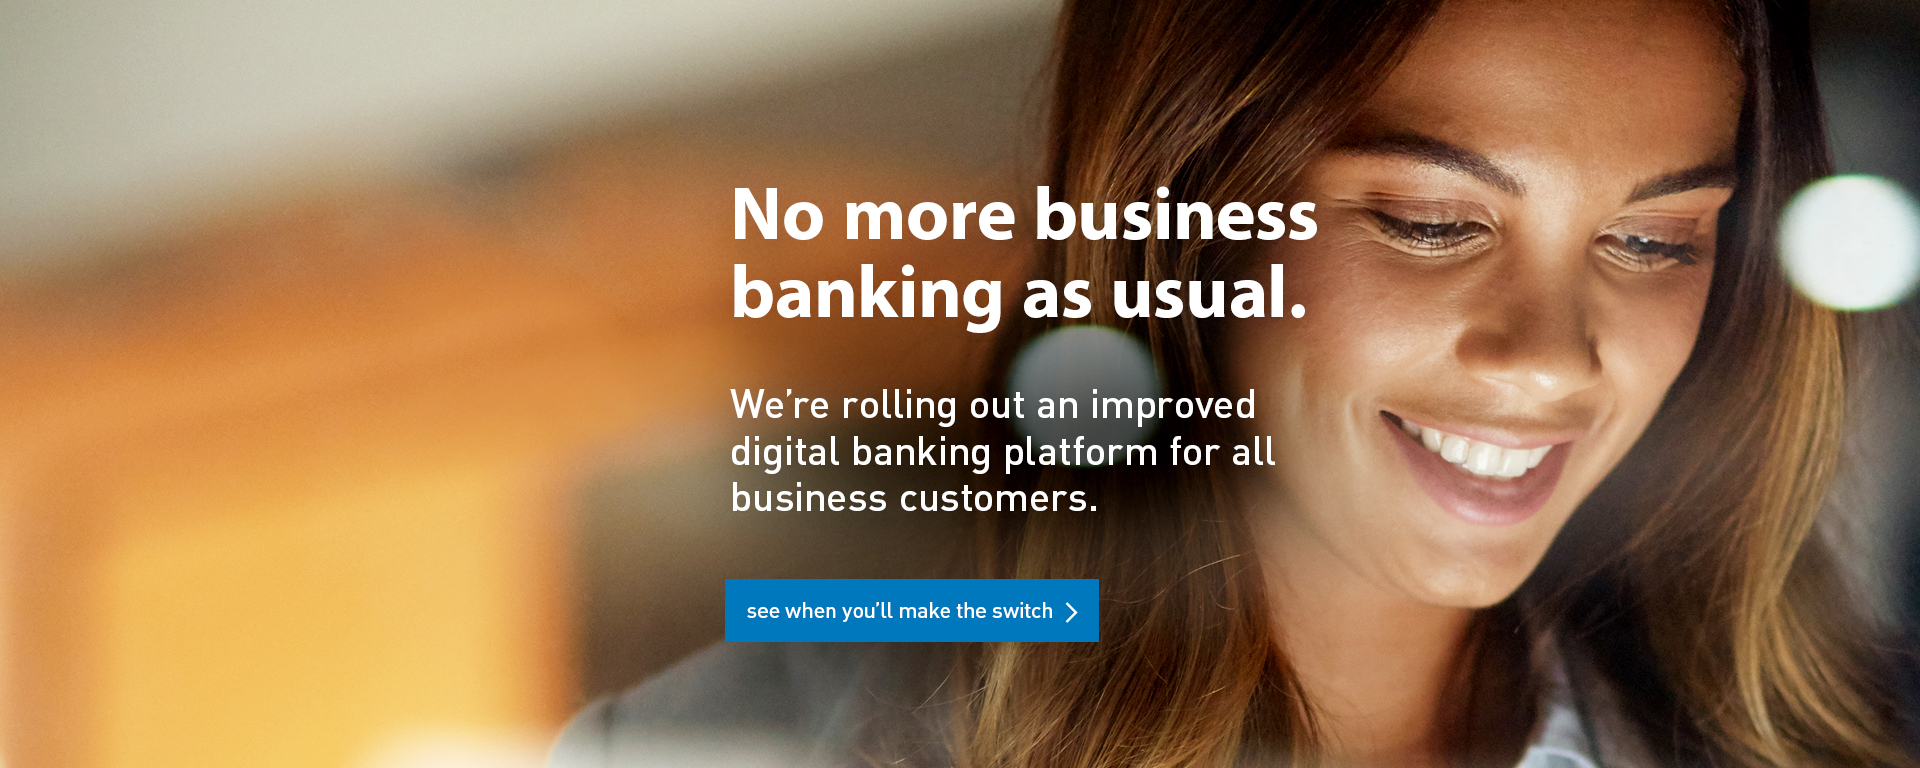 Business Digital Banking